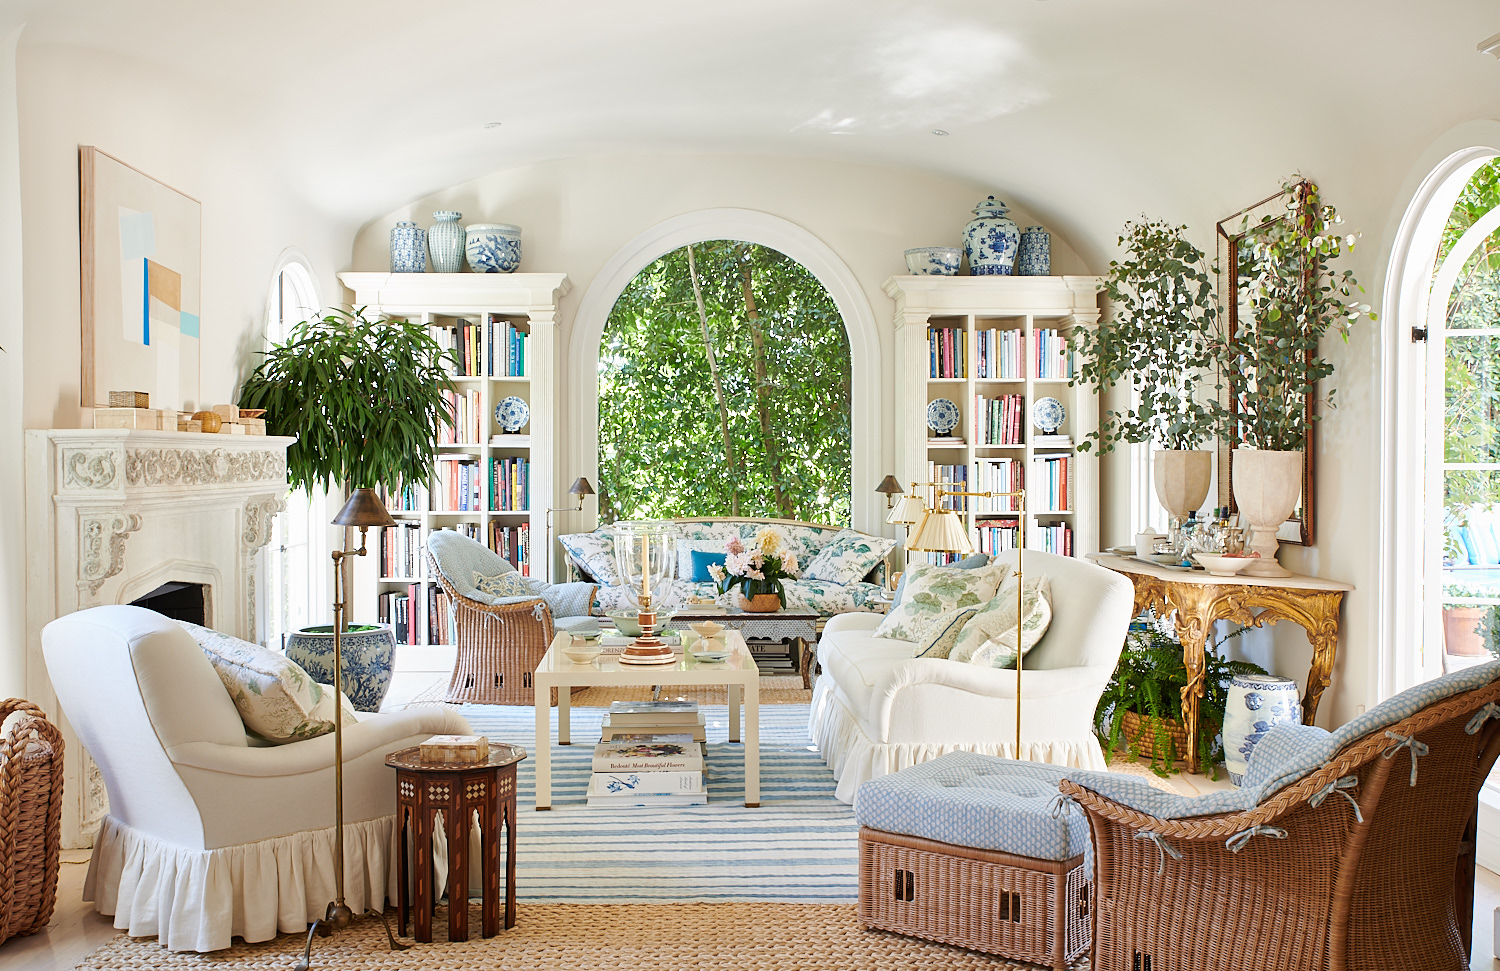 Living room view including diamond pattern cushions for cane chairs, upholstered bench with metal studs, and white sofa with pleats